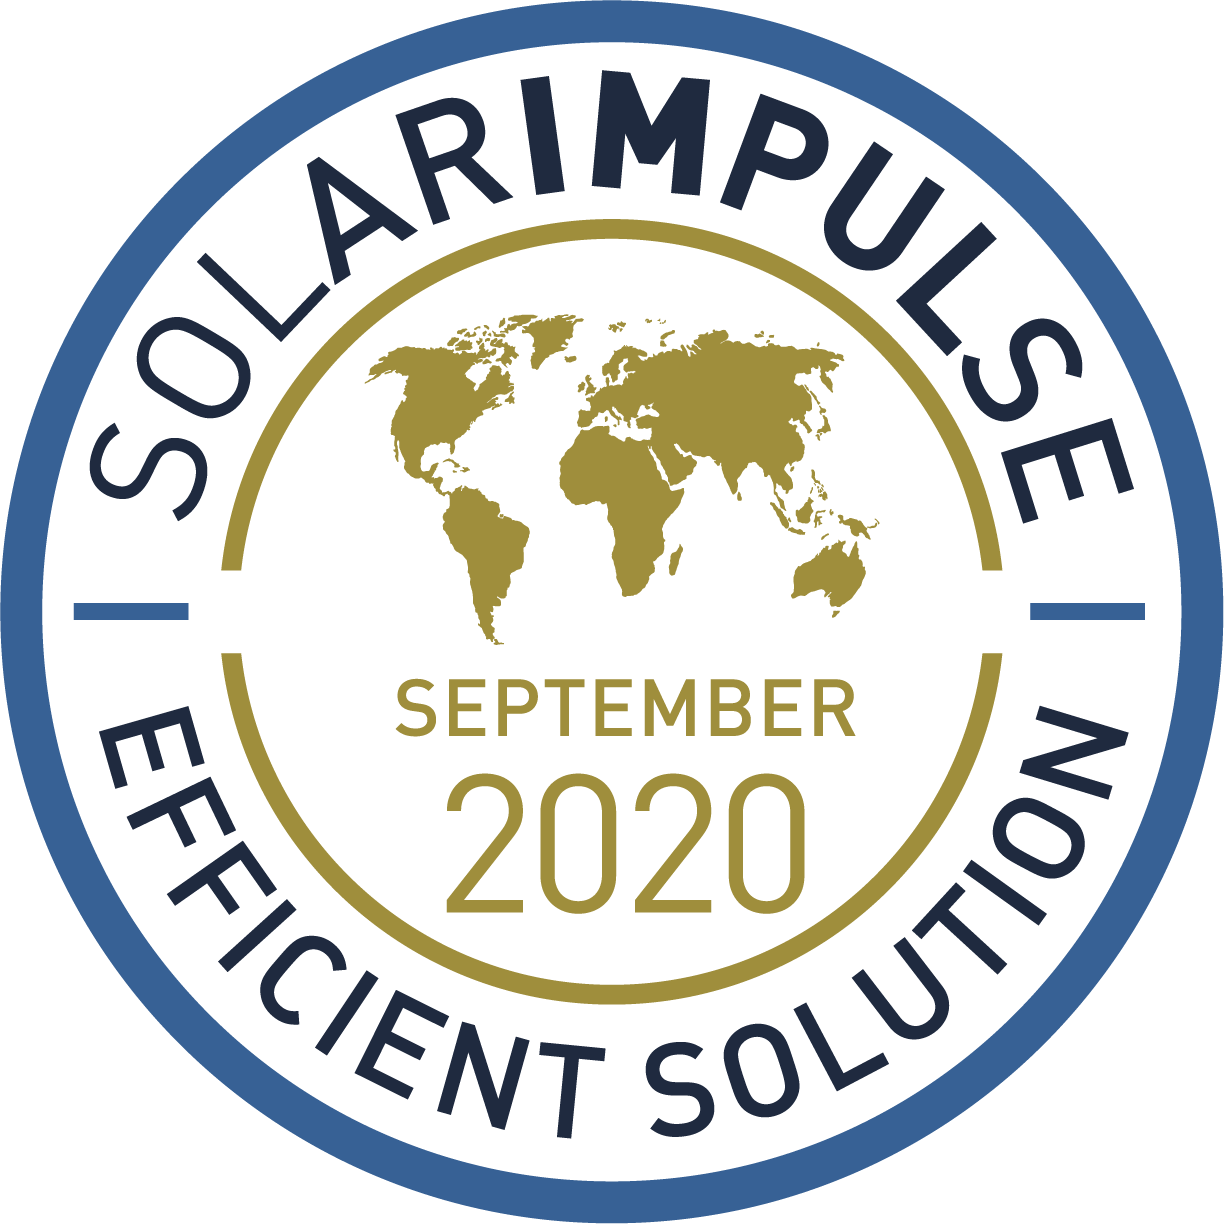 DECISIONX Awarded Solar Impulse Label